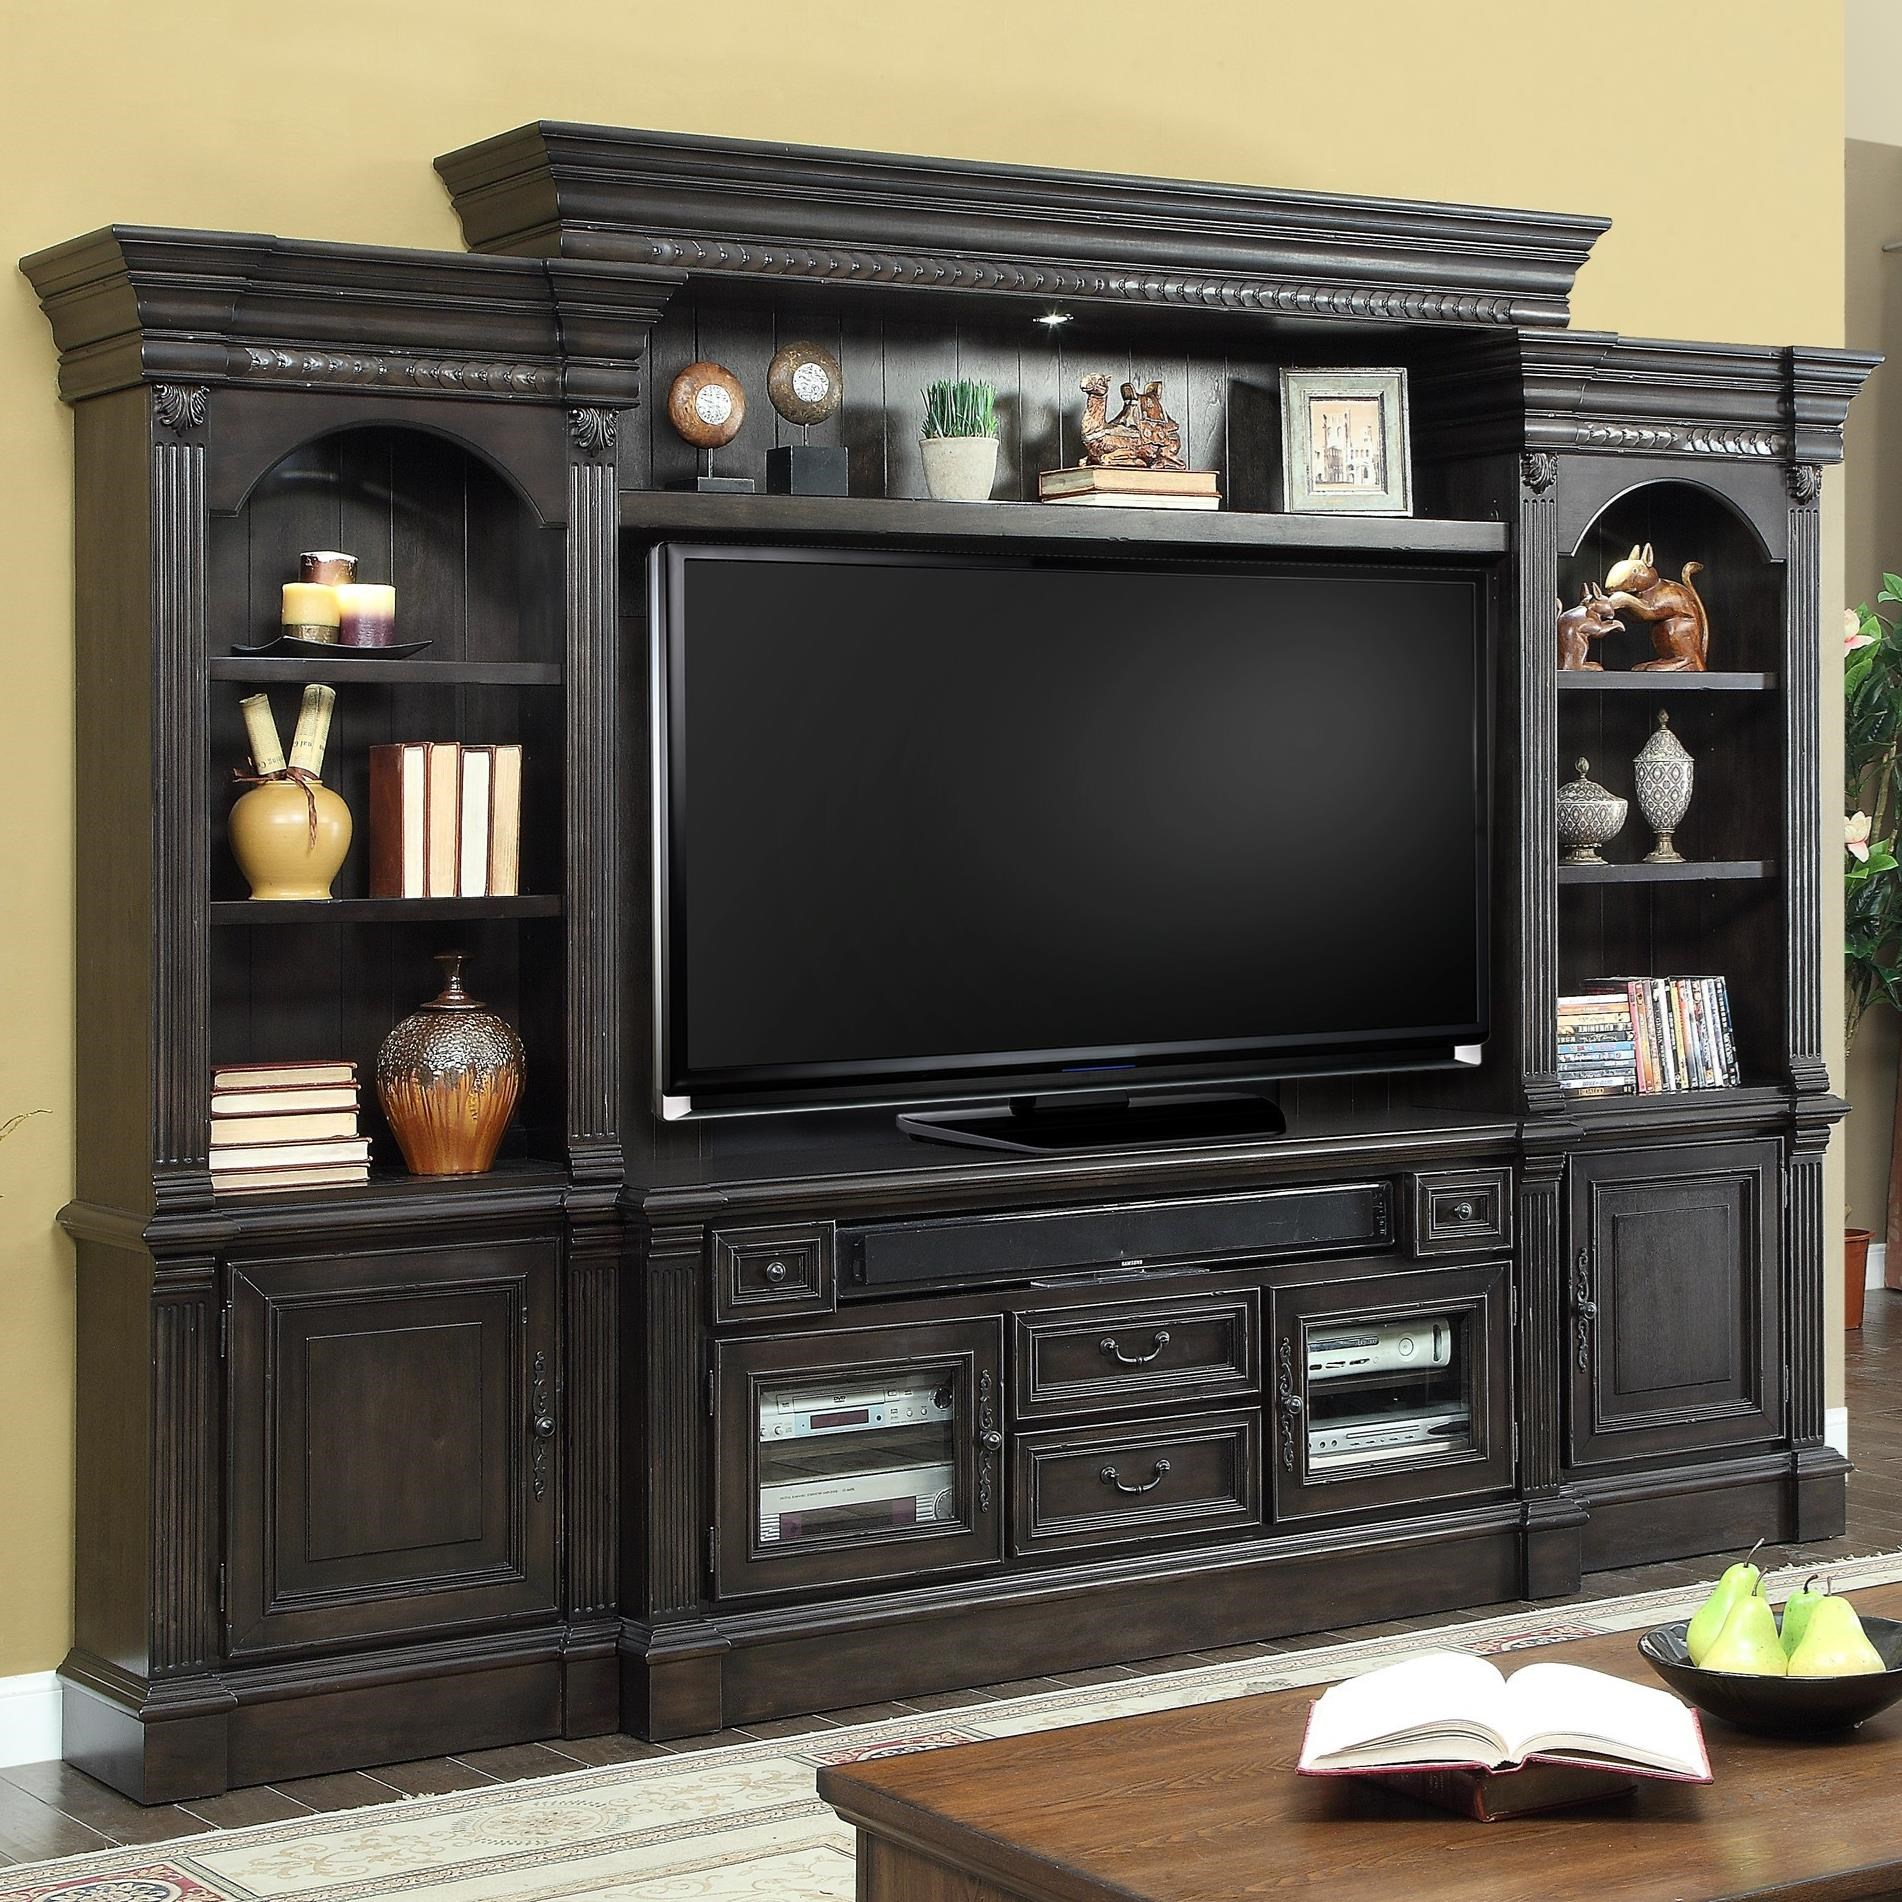 parker house fairbanks fai 100 4 4 piece entertainment. Black Bedroom Furniture Sets. Home Design Ideas